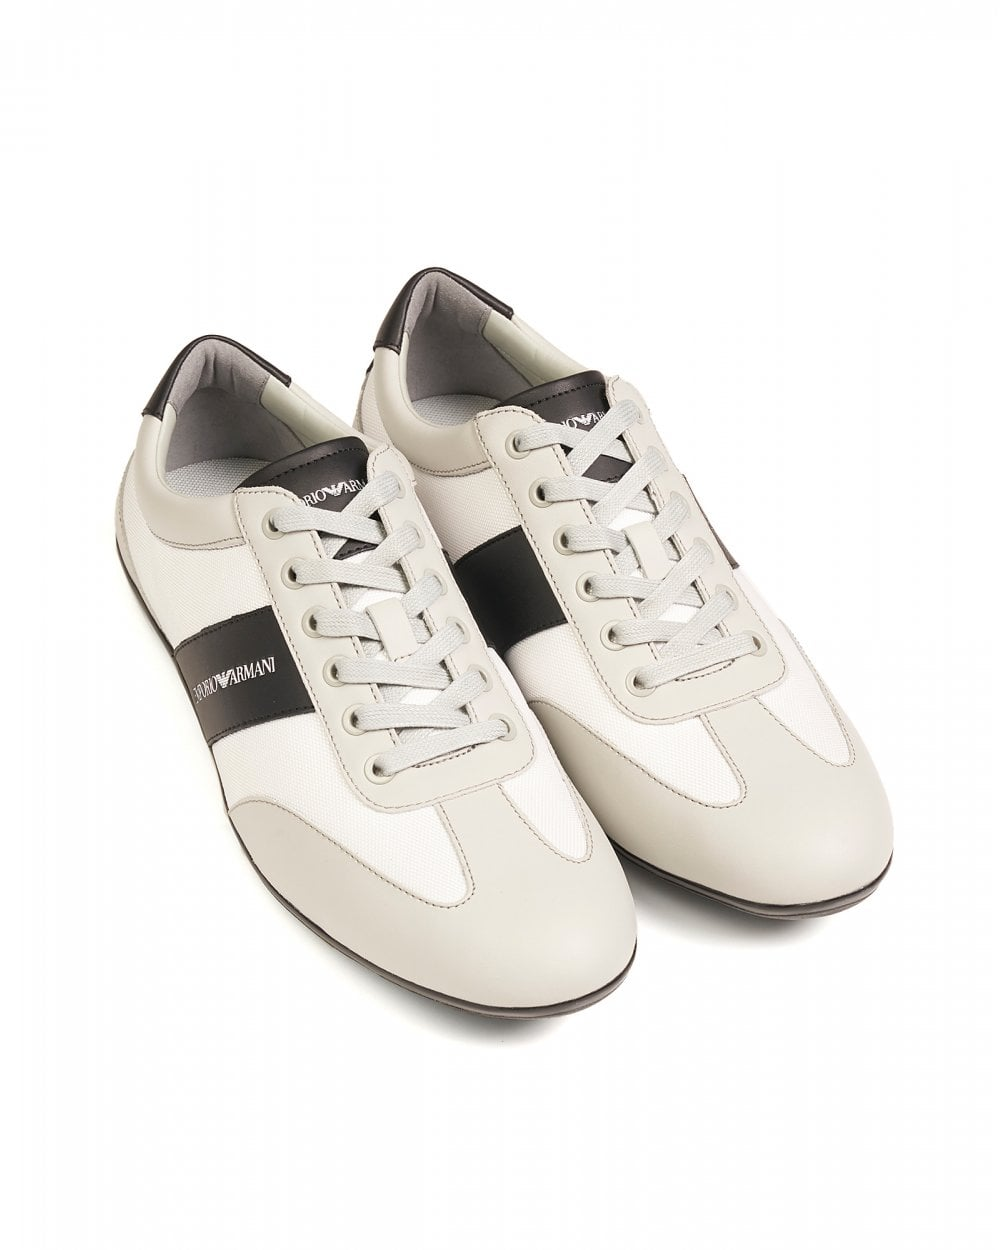 924bed401 Emporio Armani Mens White Leather Trainers, Logo Sneakers